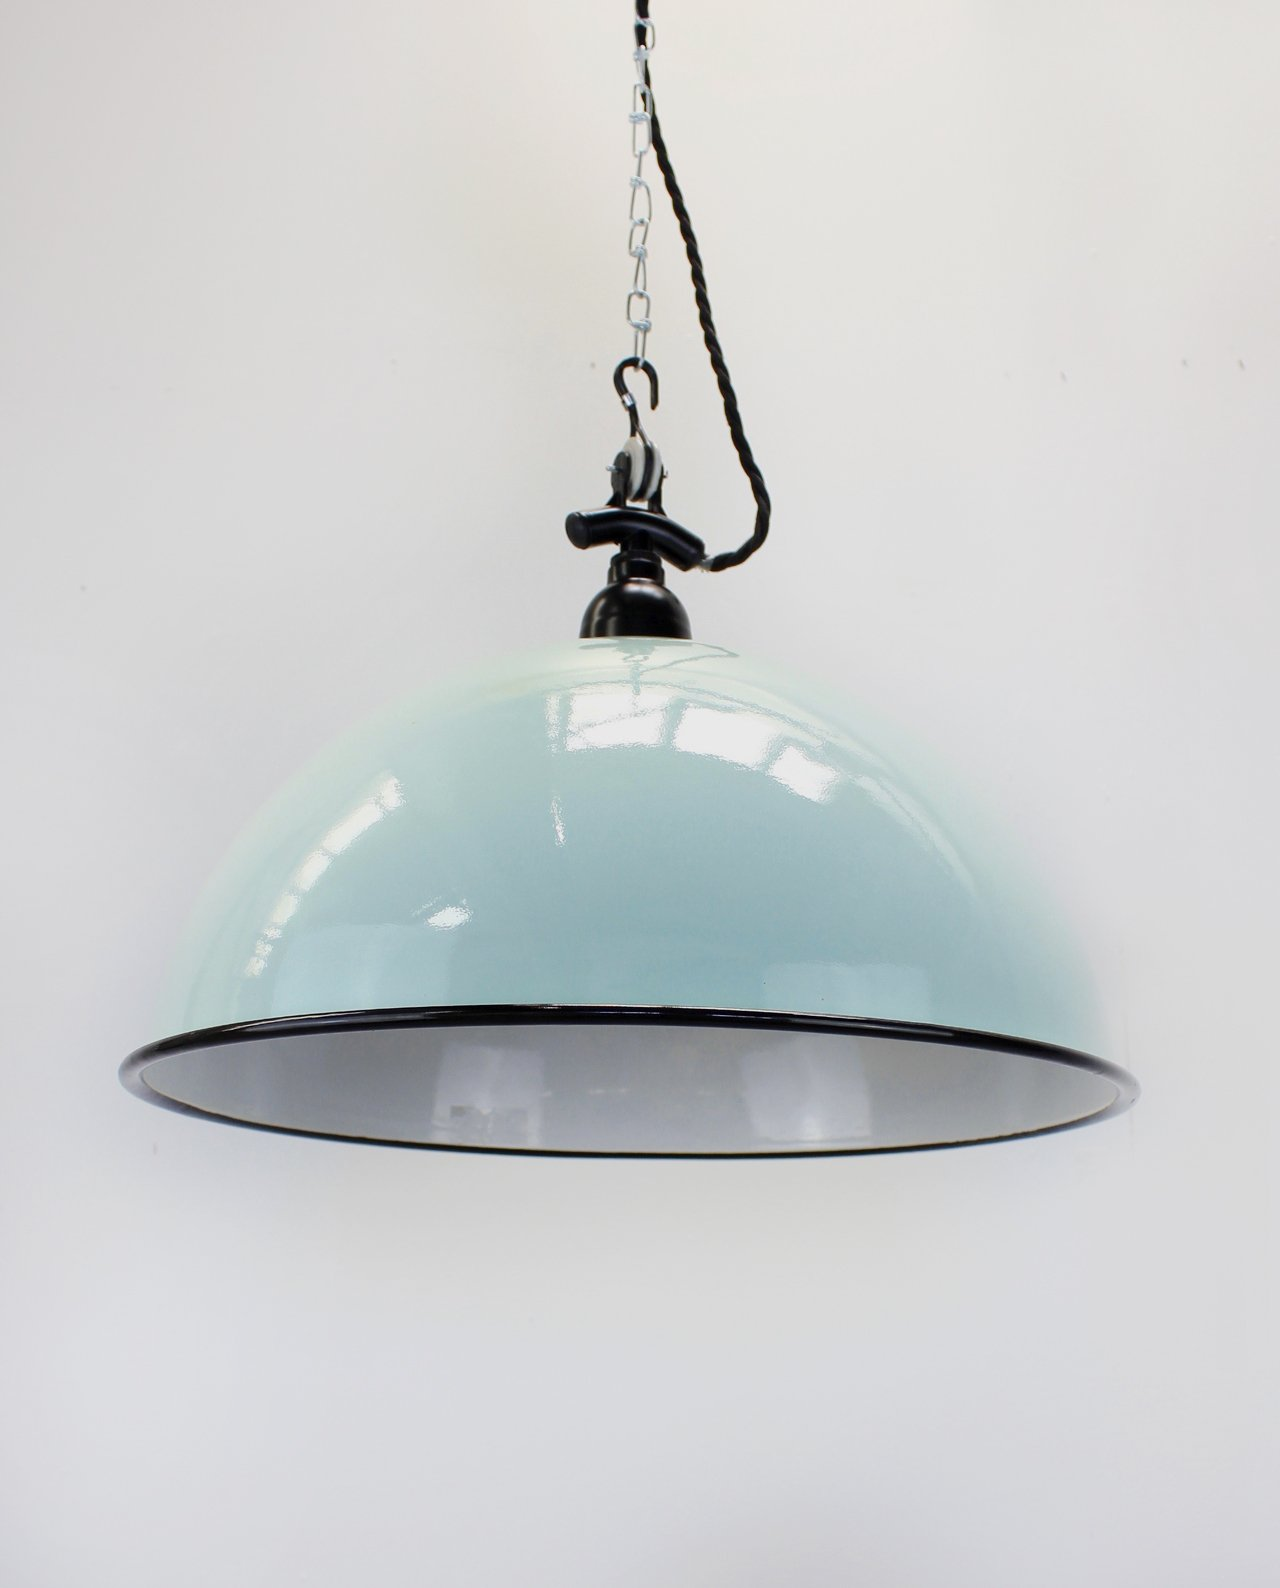 Enamel dome teal black